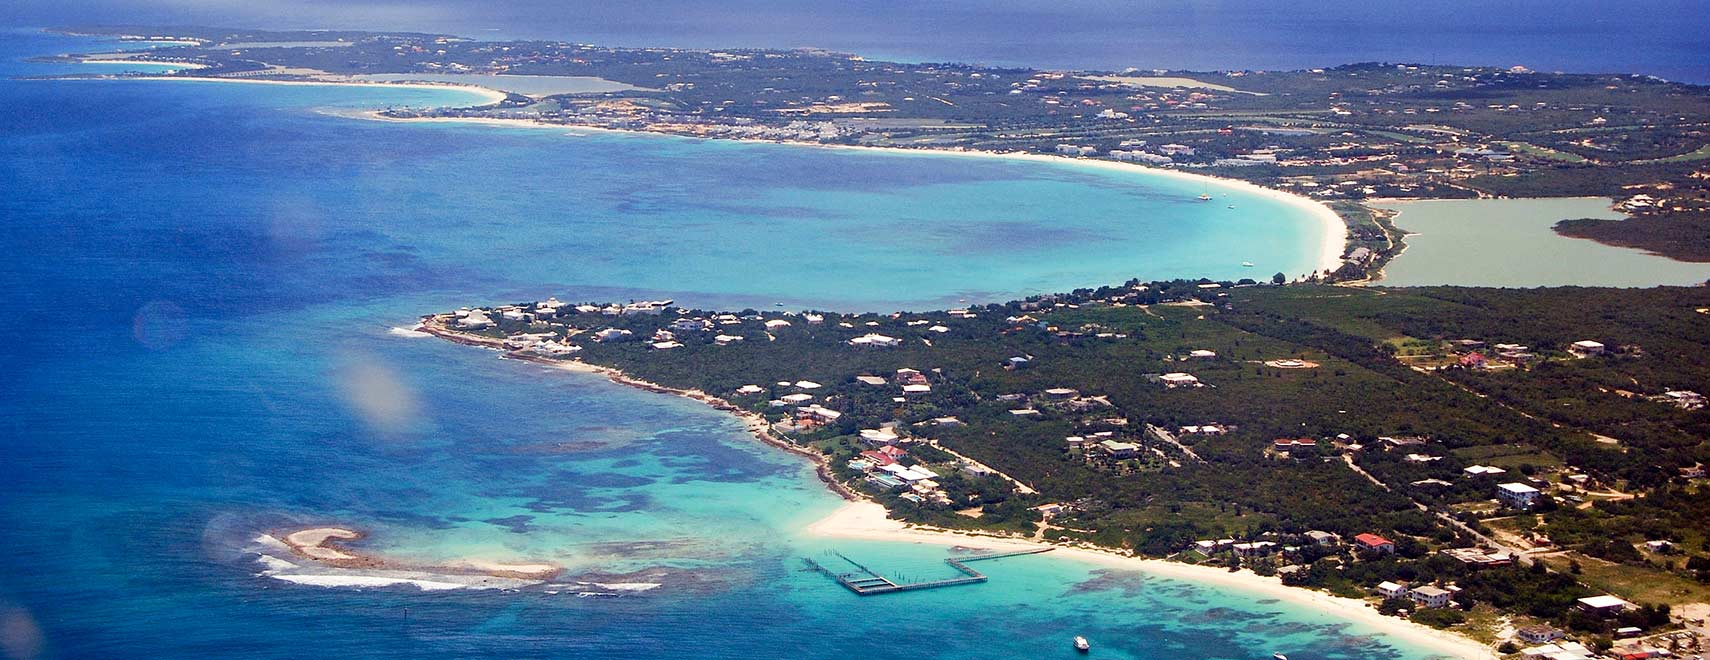 Google Map of Anguilla - Nations Online Project